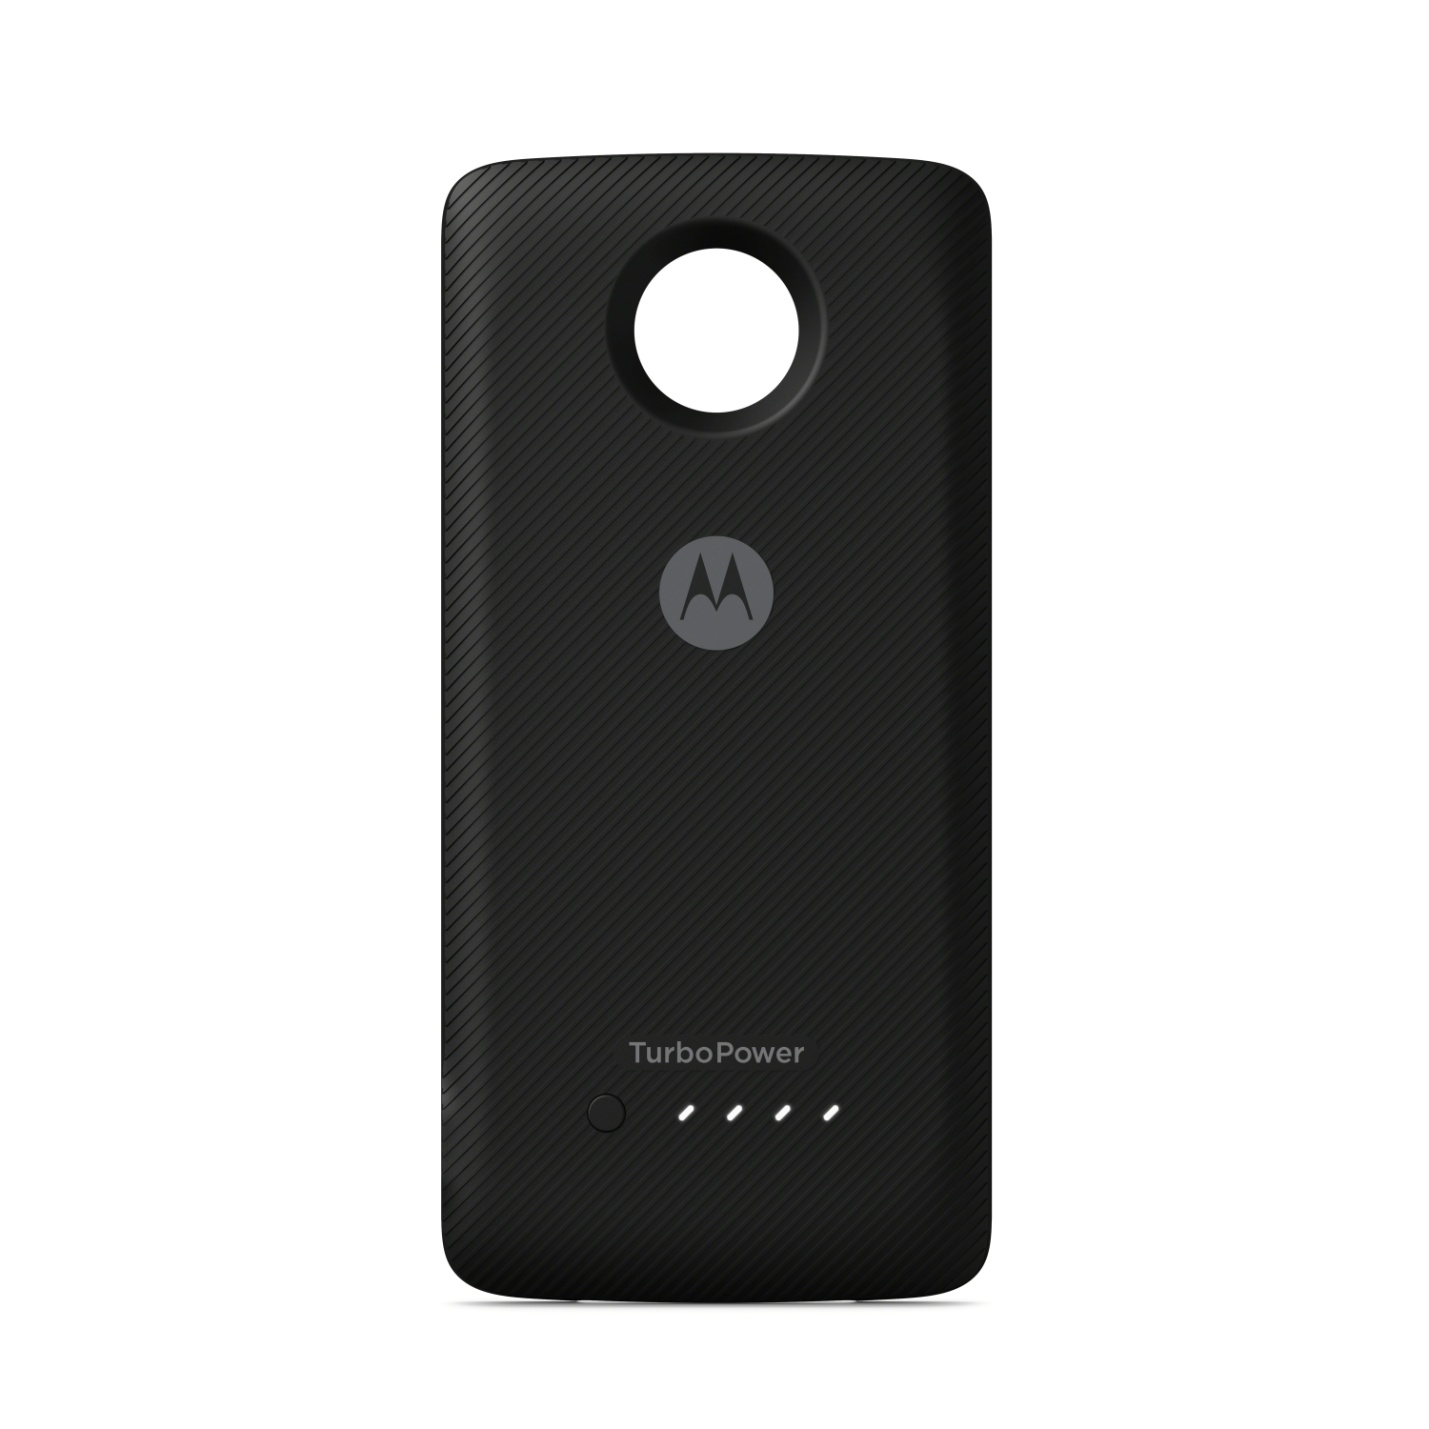 http://motorola.press/Files/_Products/Moto%20MODs/Photos/TurboPower%20Pack%20MOD/MotoModsTurboBattery_BlkDv_AmpFront.jpg